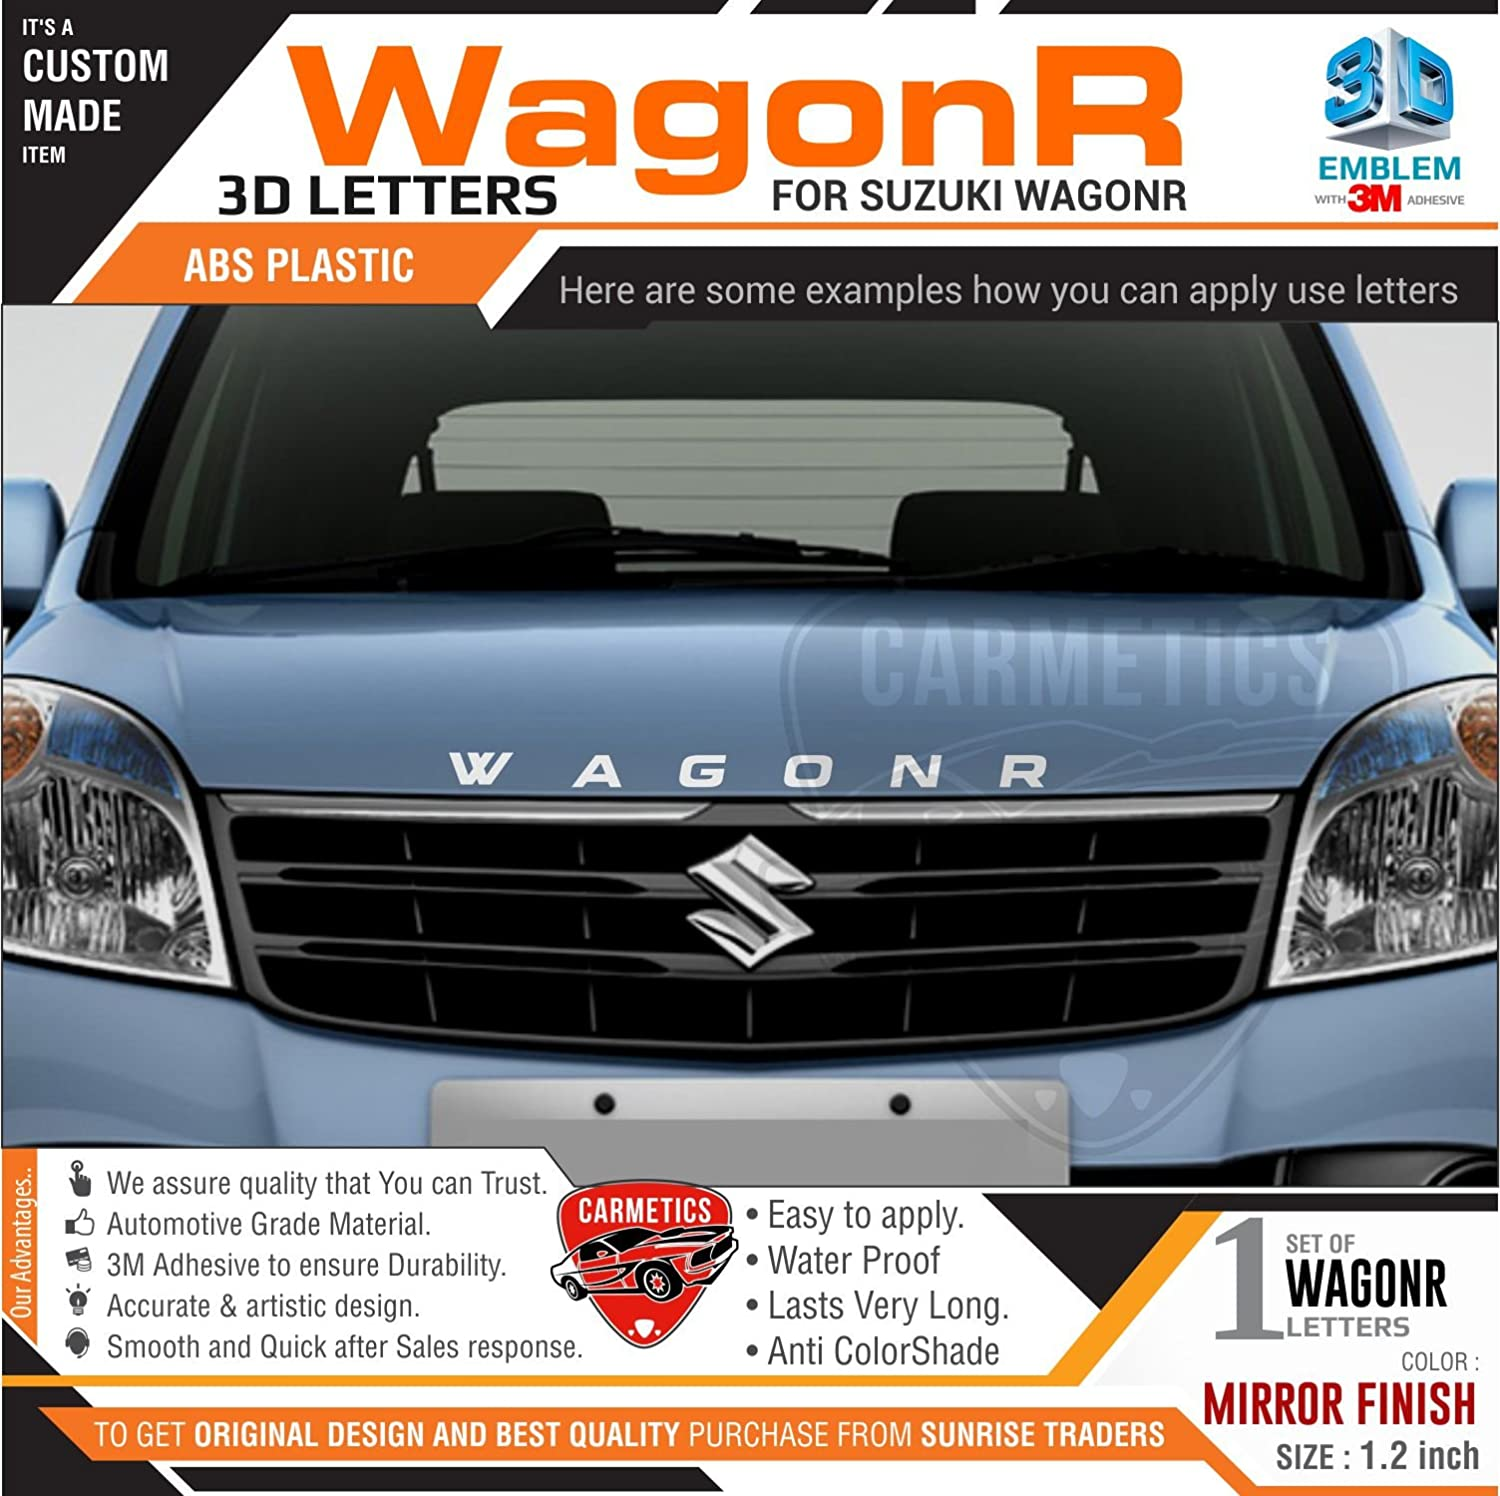 Carmetics wagonr 3d letters for maruti suzuki wagonr mirror finish amazon in car motorbike